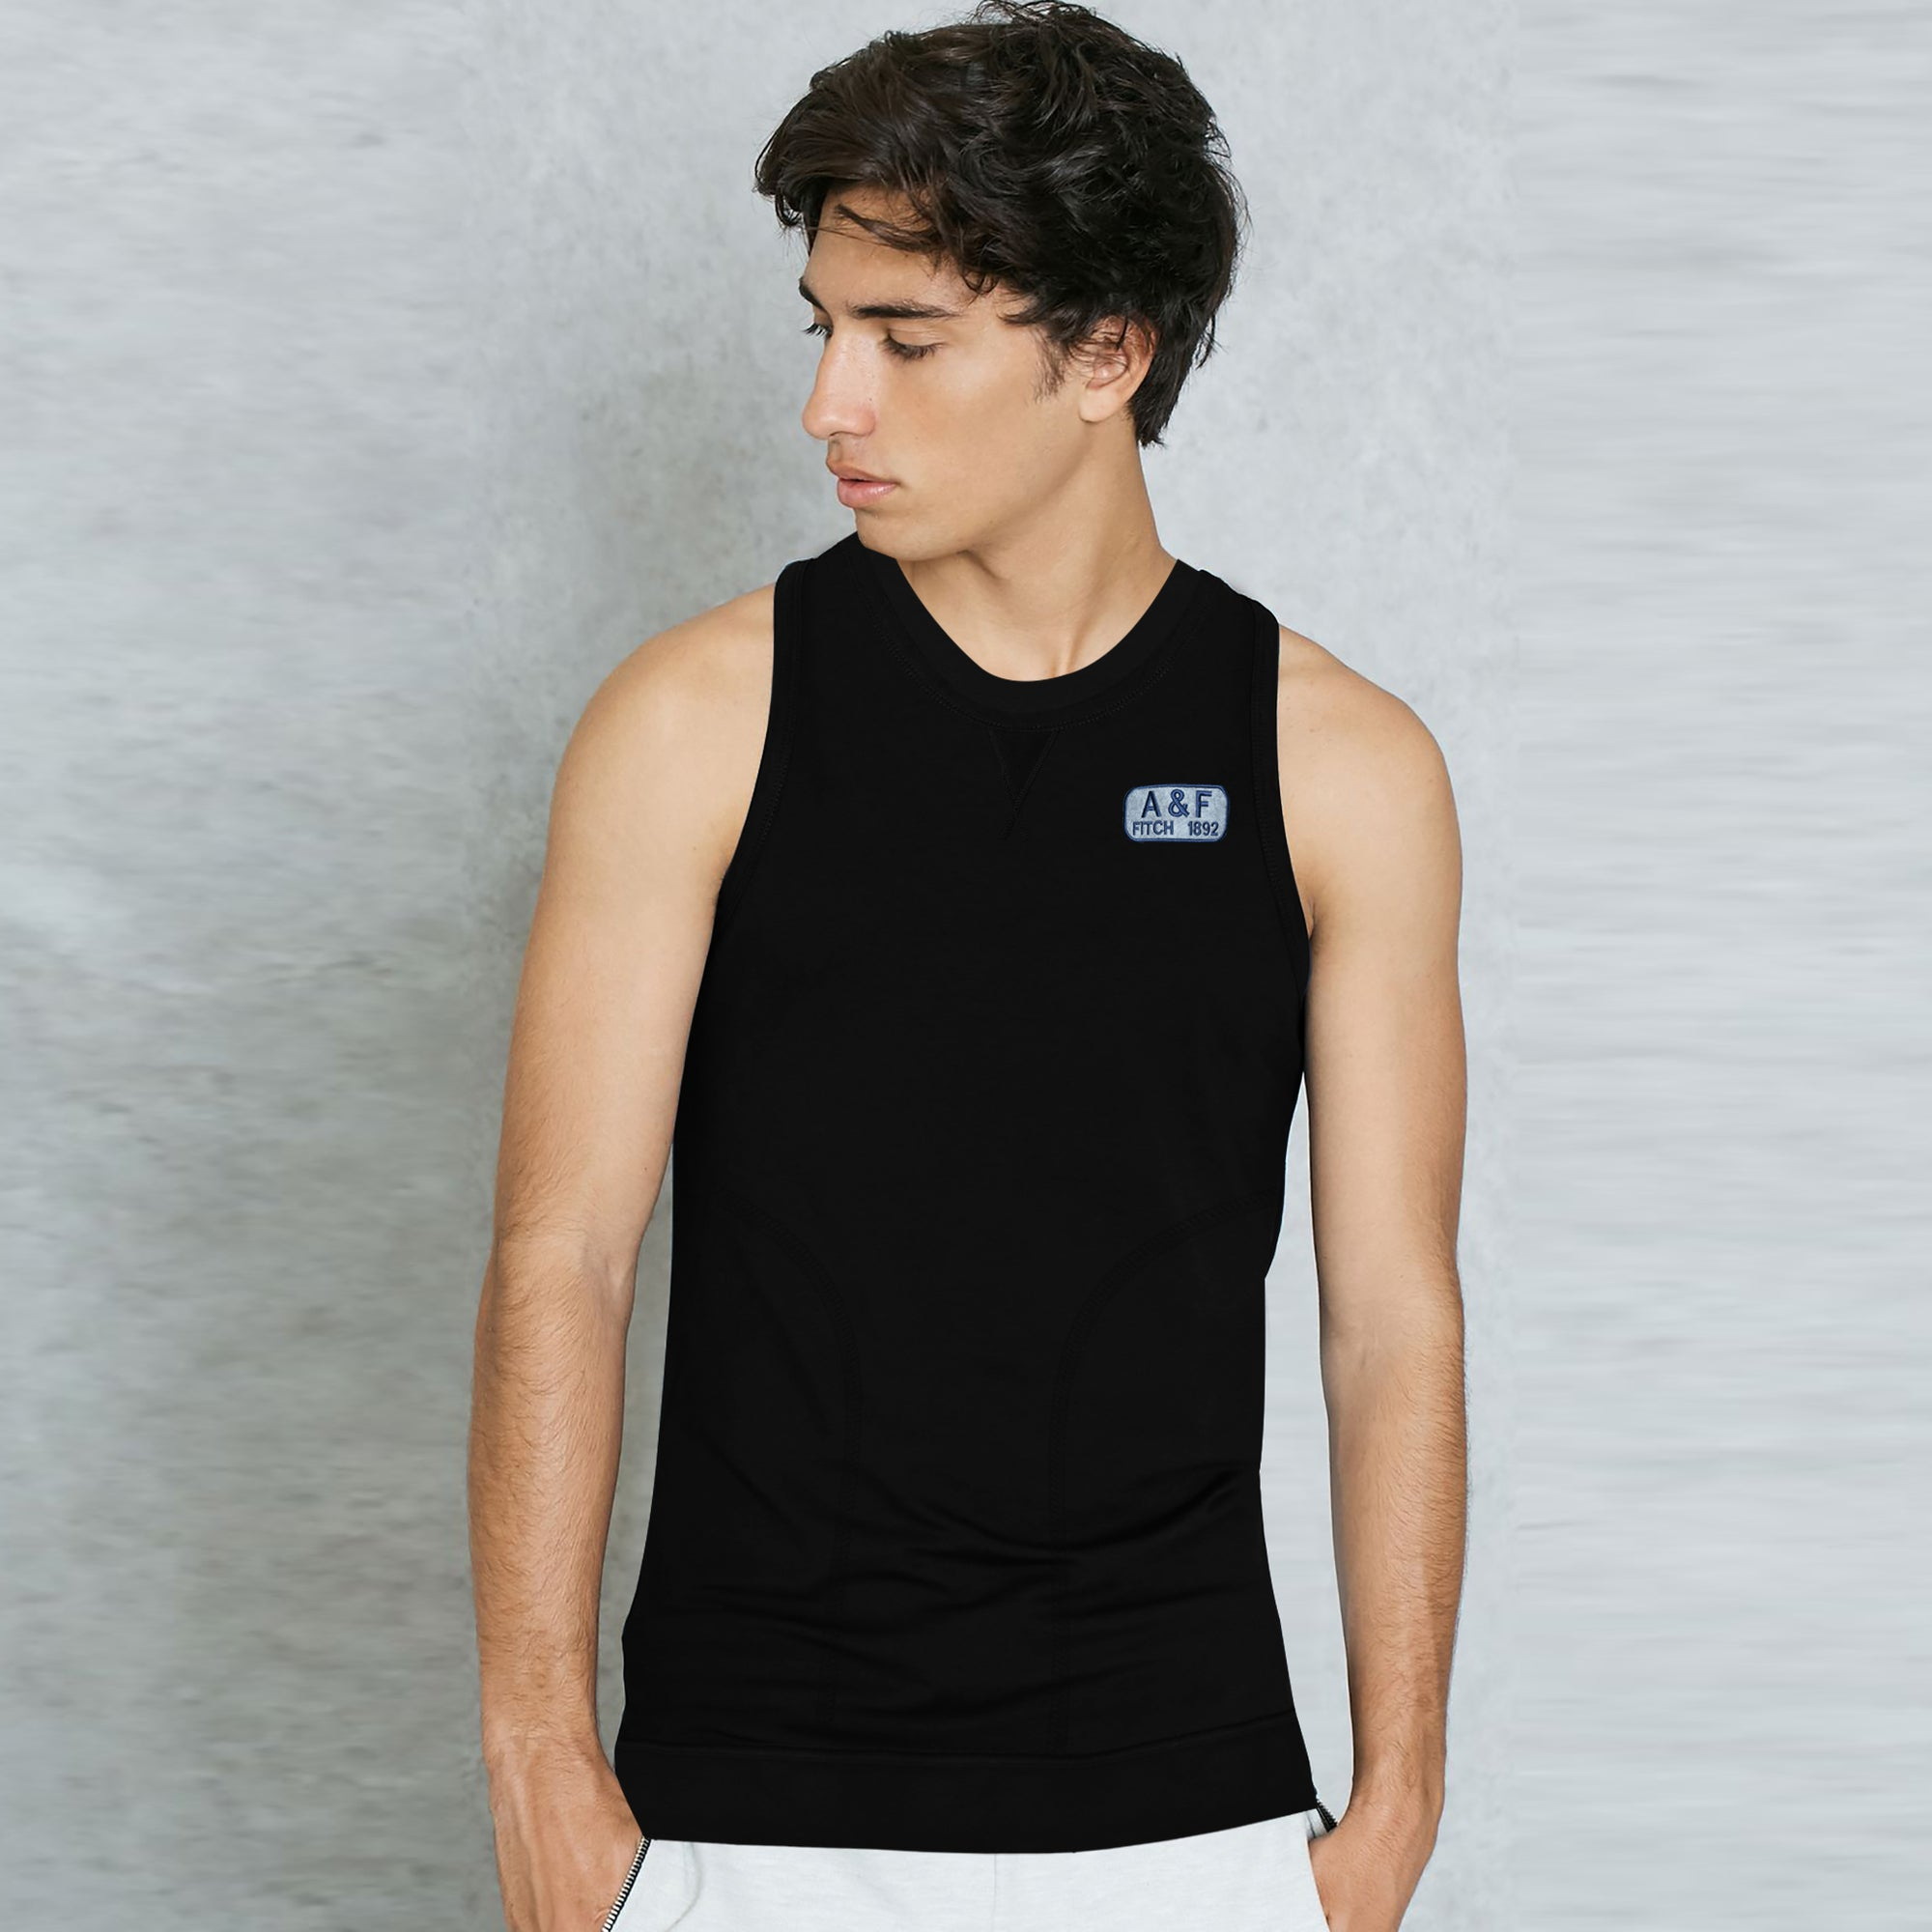 A&F Terry Fleece Sleeveless Shirt For Men-Black-BE6525